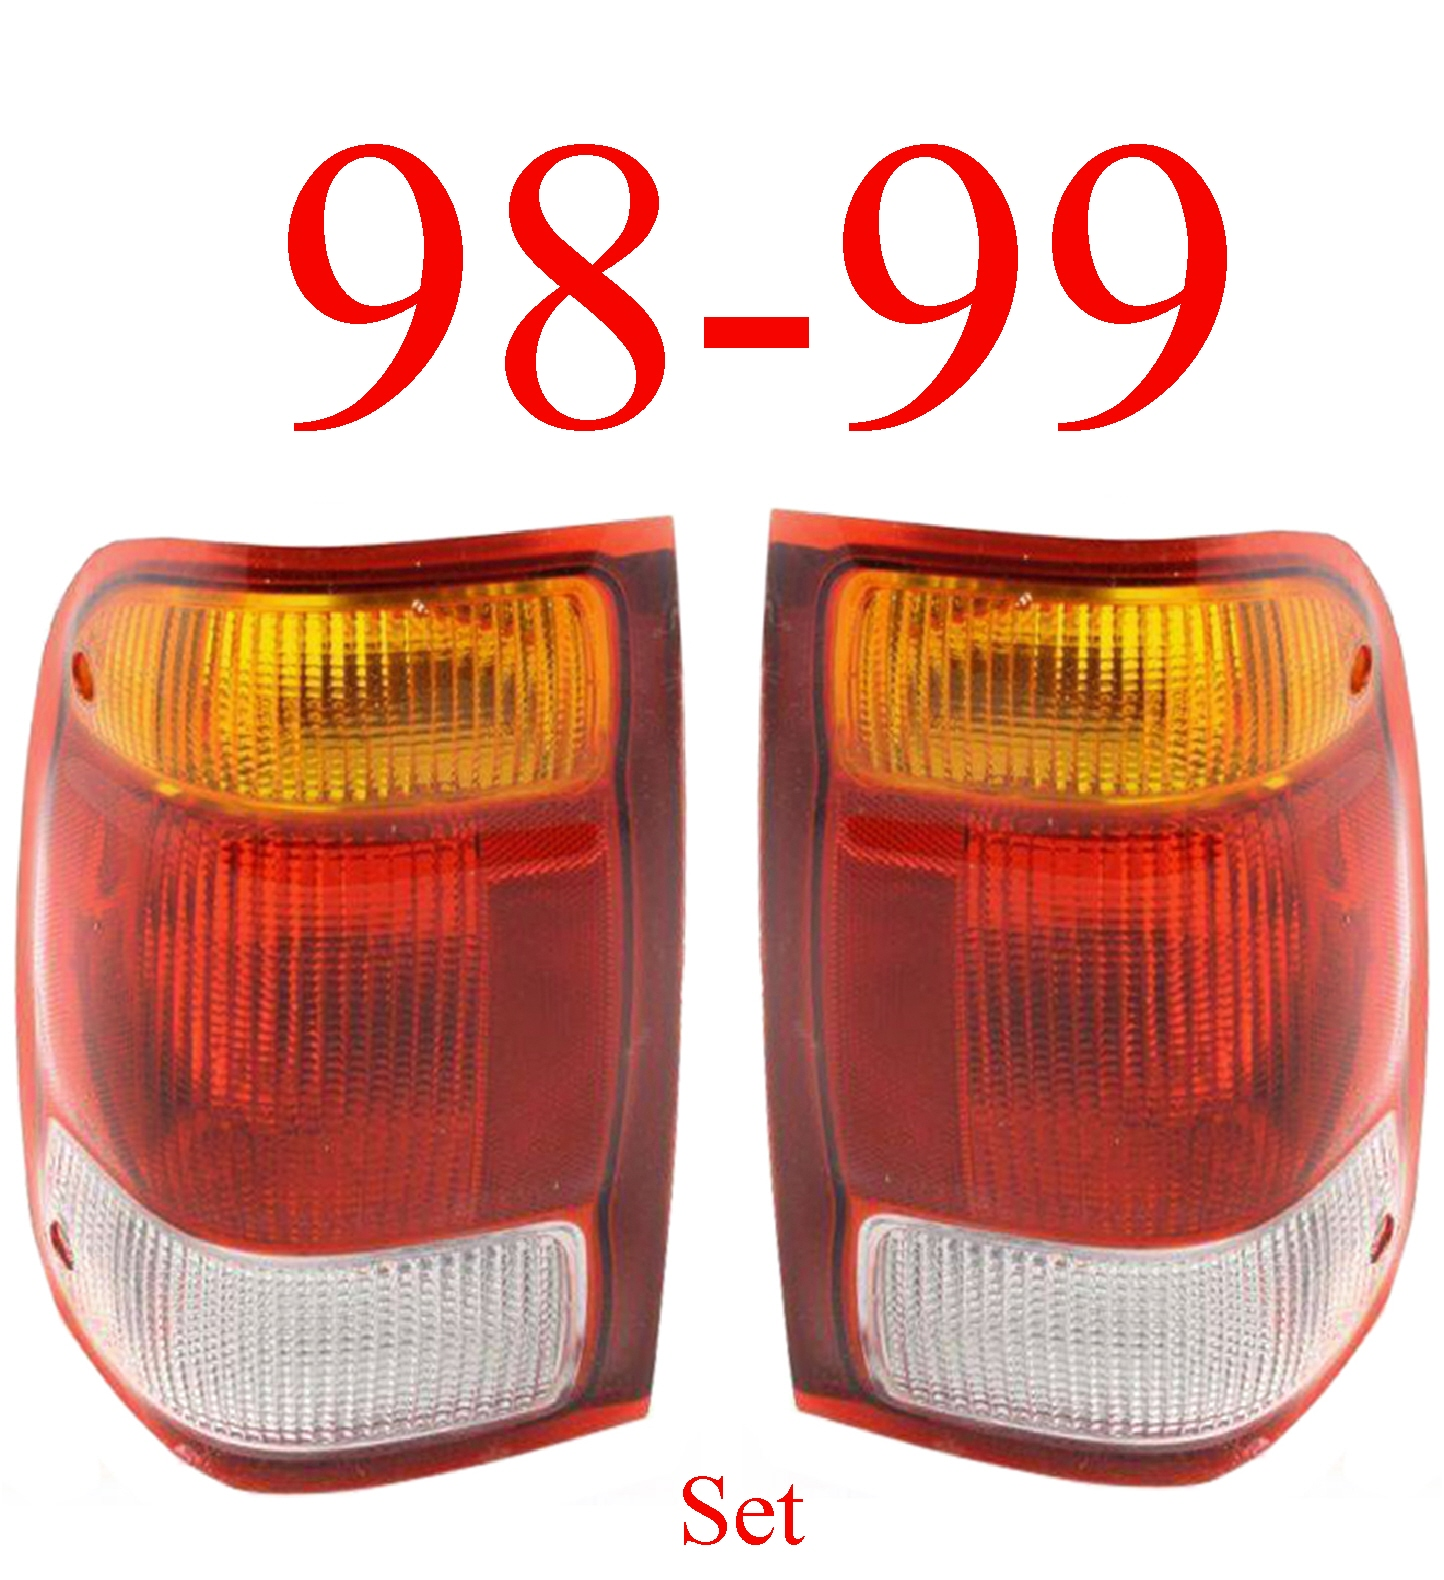 98-99 Ford Ranger 2Pc Tail Light Set